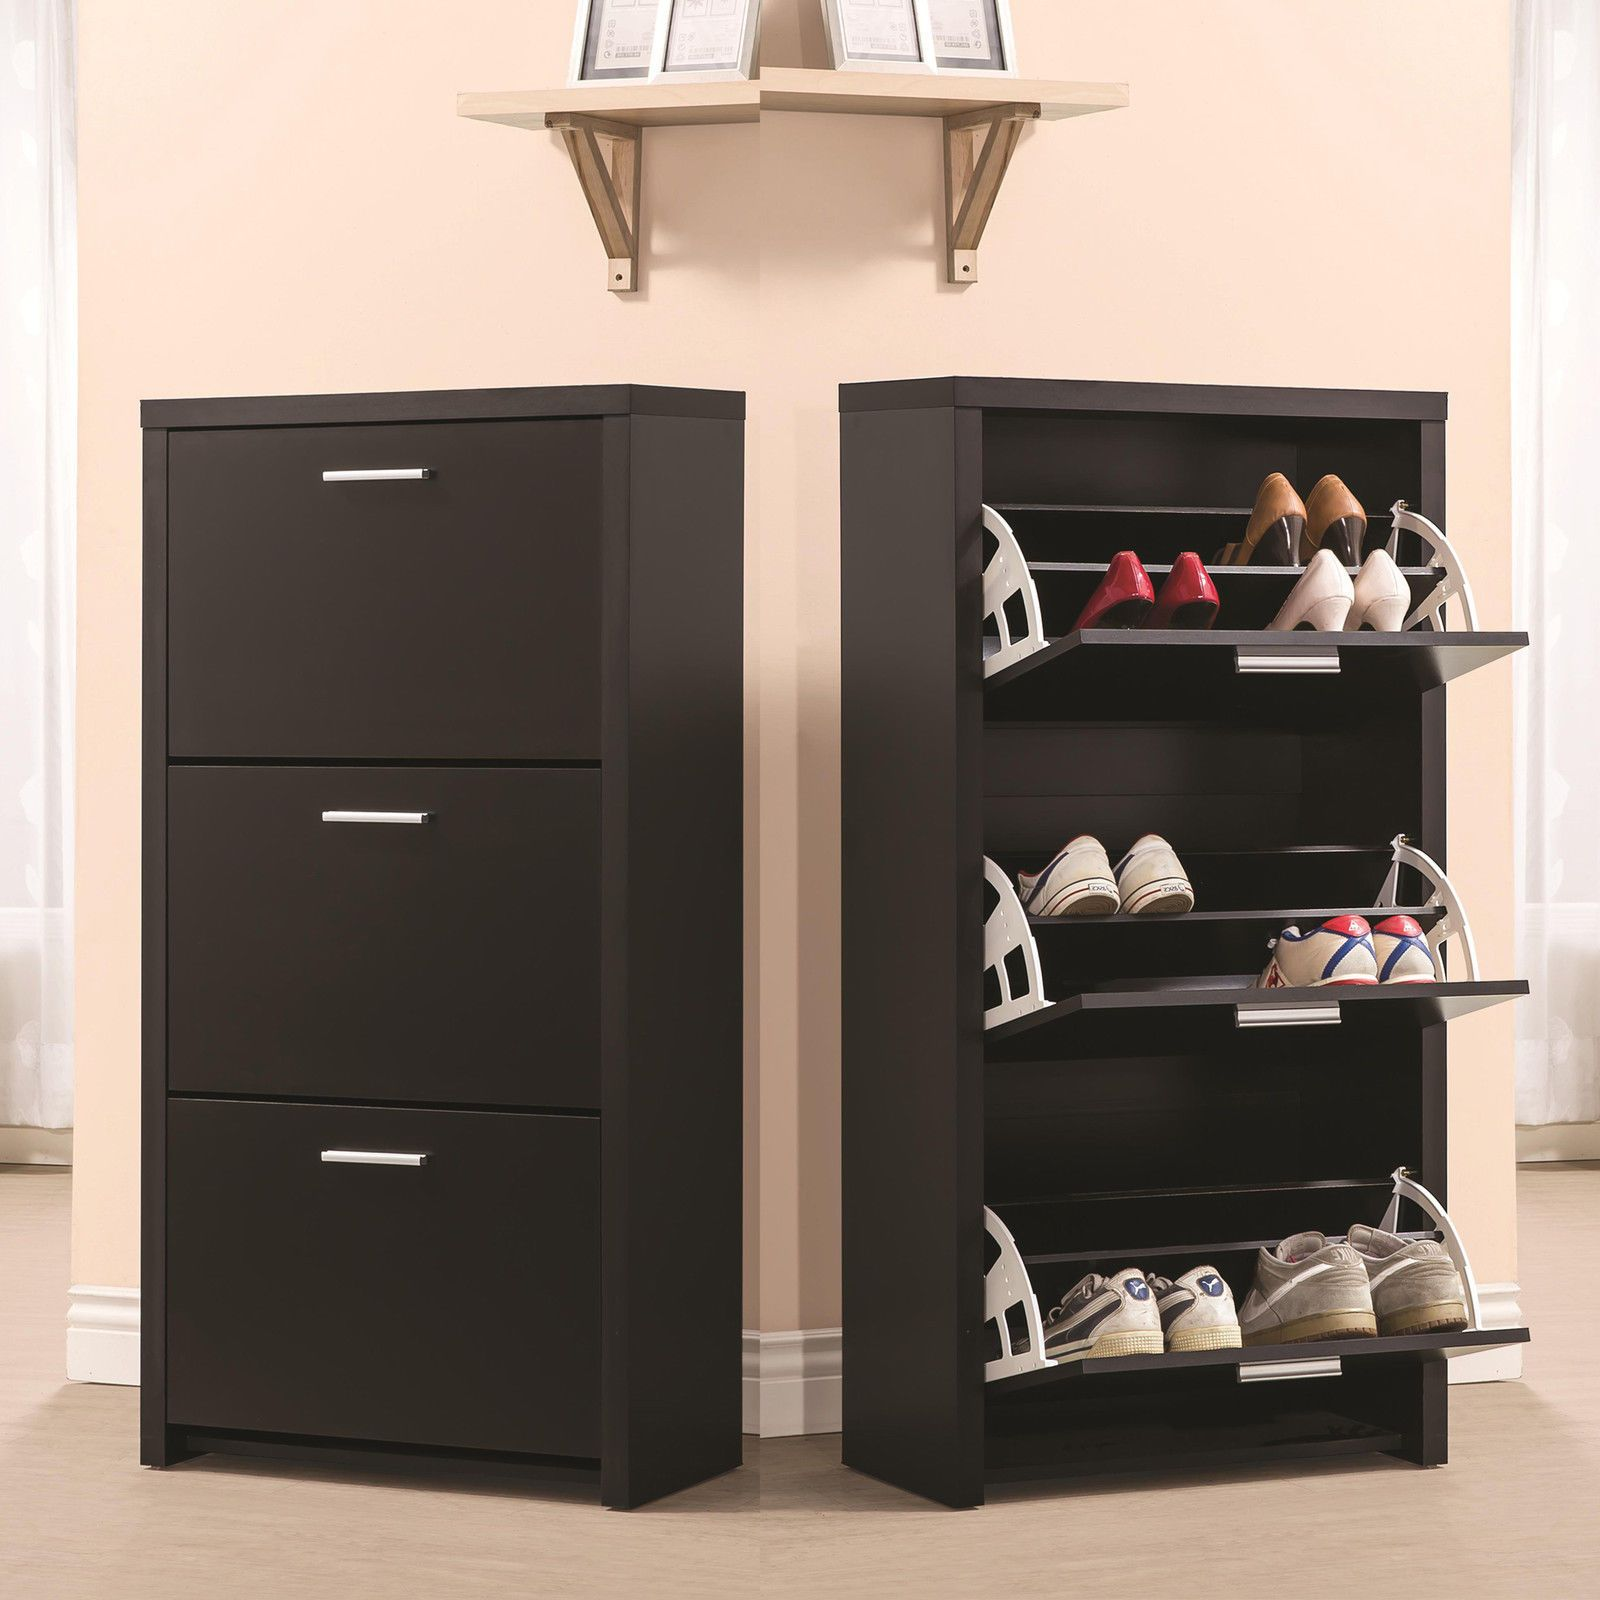 tag pairs tags shoe size boot of mirror and four lp cabinet cabinets ikea drawer bathroom storage organizer full ideas